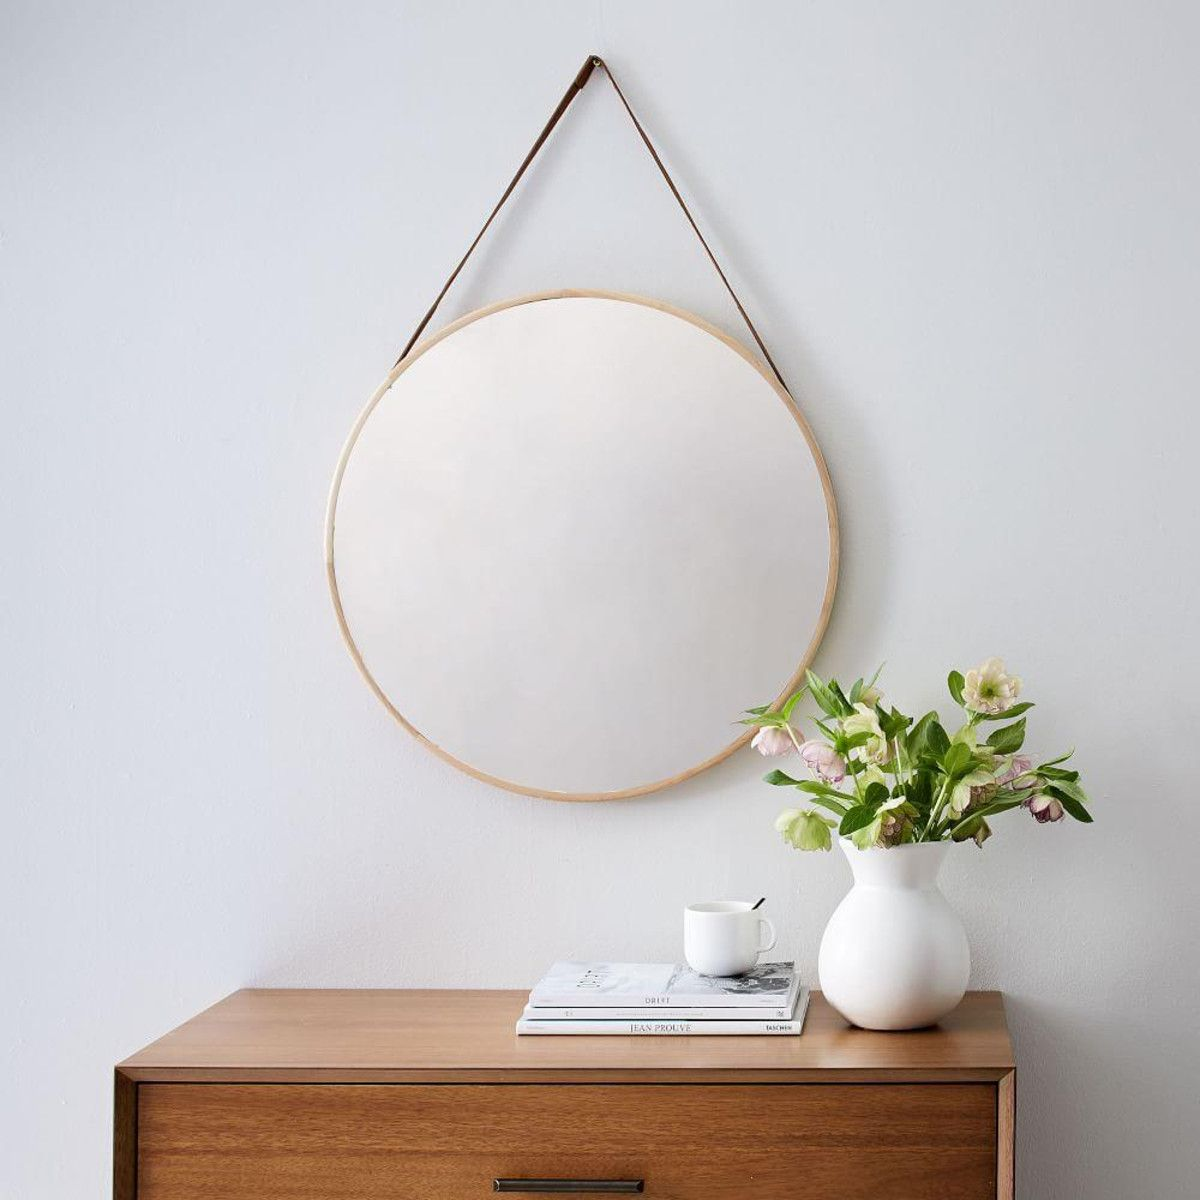 Modern Furniture Home Decor Home Accessories West Elm modern furniture, home decor & home accessories | west elm | new